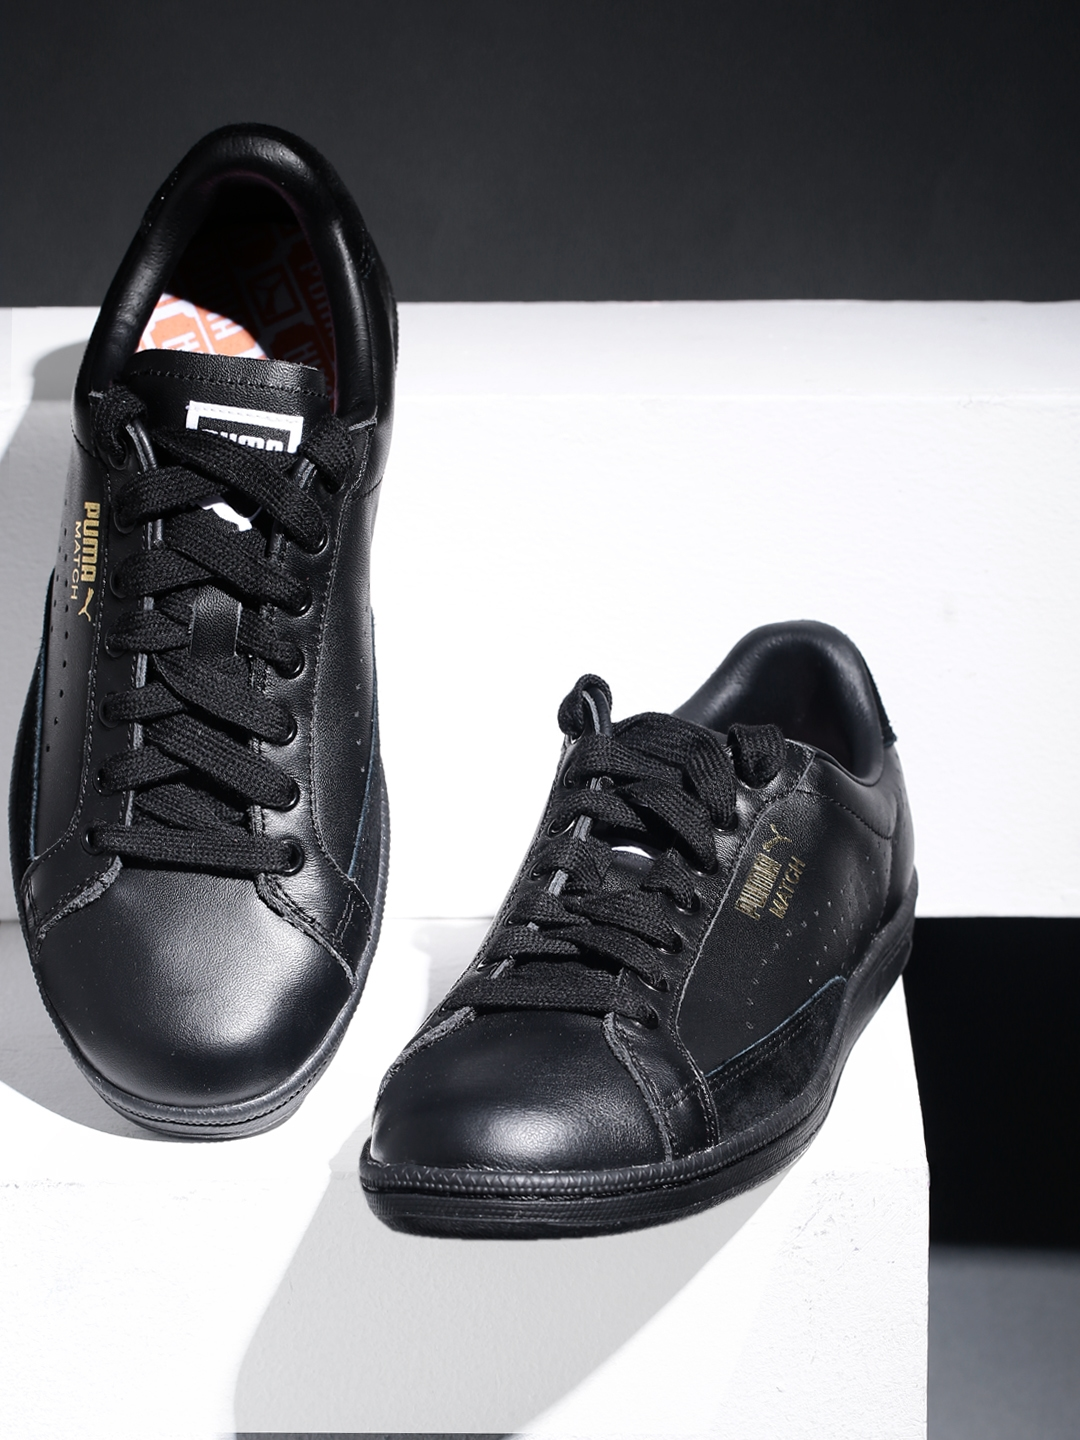 38f377ac2260 Buy PUMA Men Black Match 74 UPC Leather Sneakers - Casual Shoes for ...